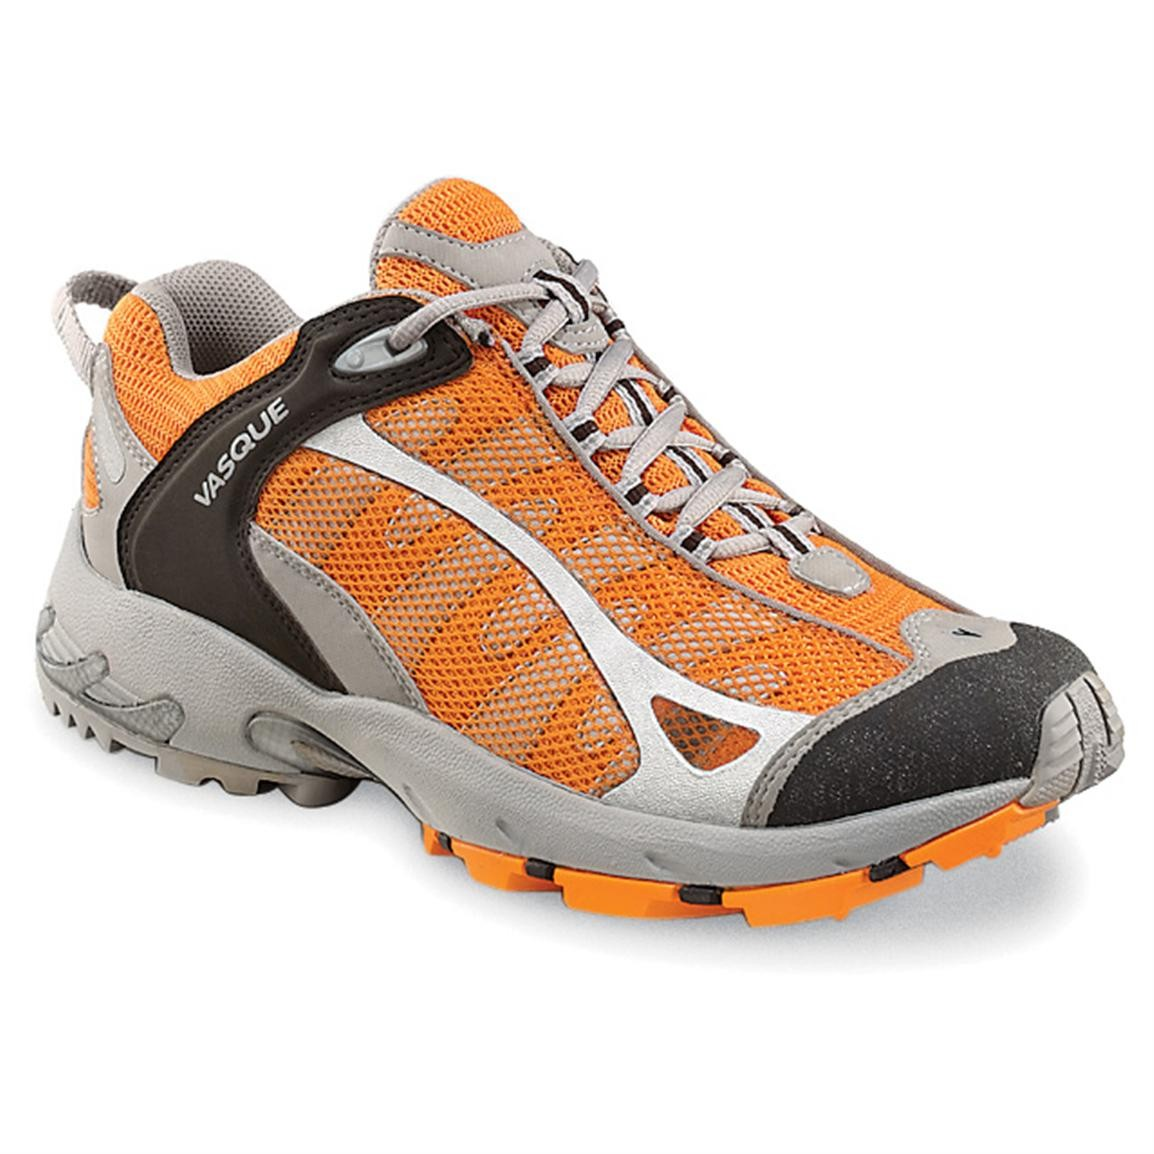 VASQUE Adult Velocity VST Shoes